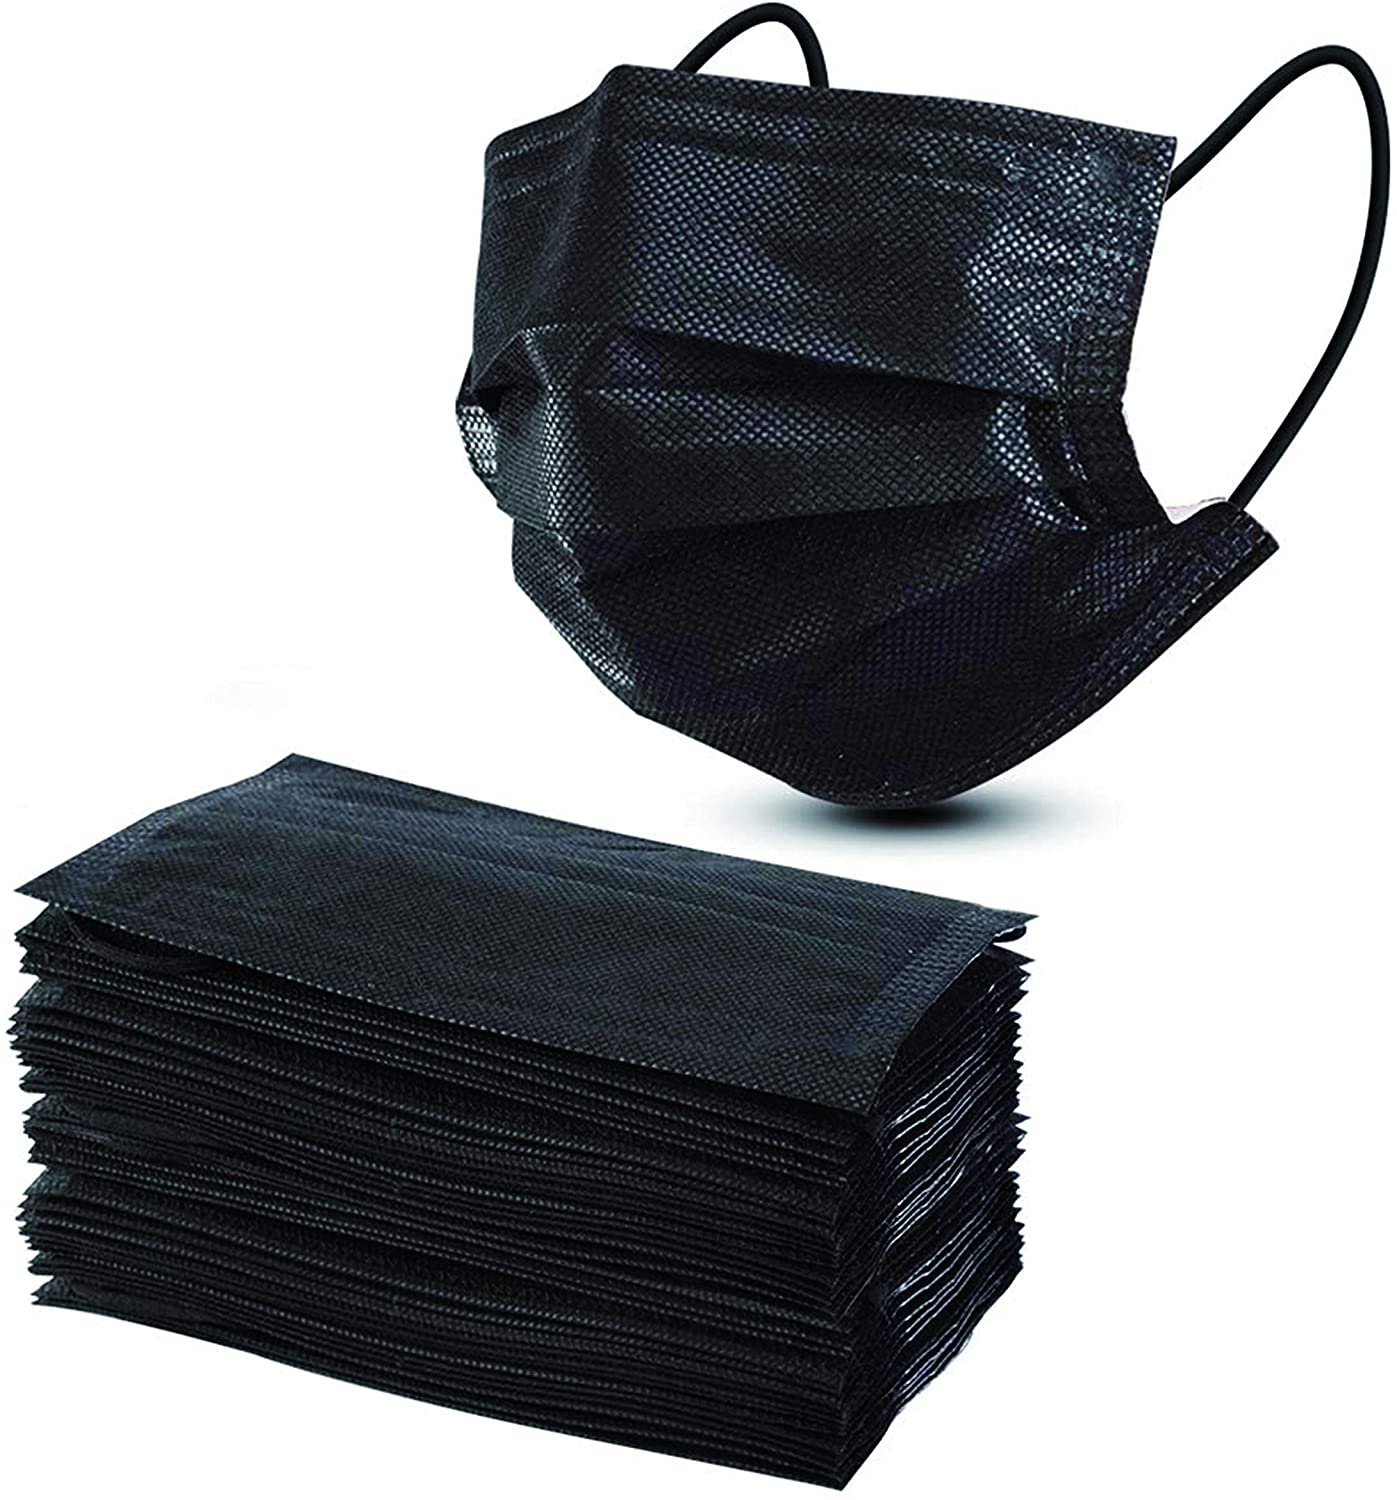 Generise Surgical 3 Ply Face Mask - BLACK- 50 Per Box, Work Safety Protective Equipment by My Wholesale Warehouse